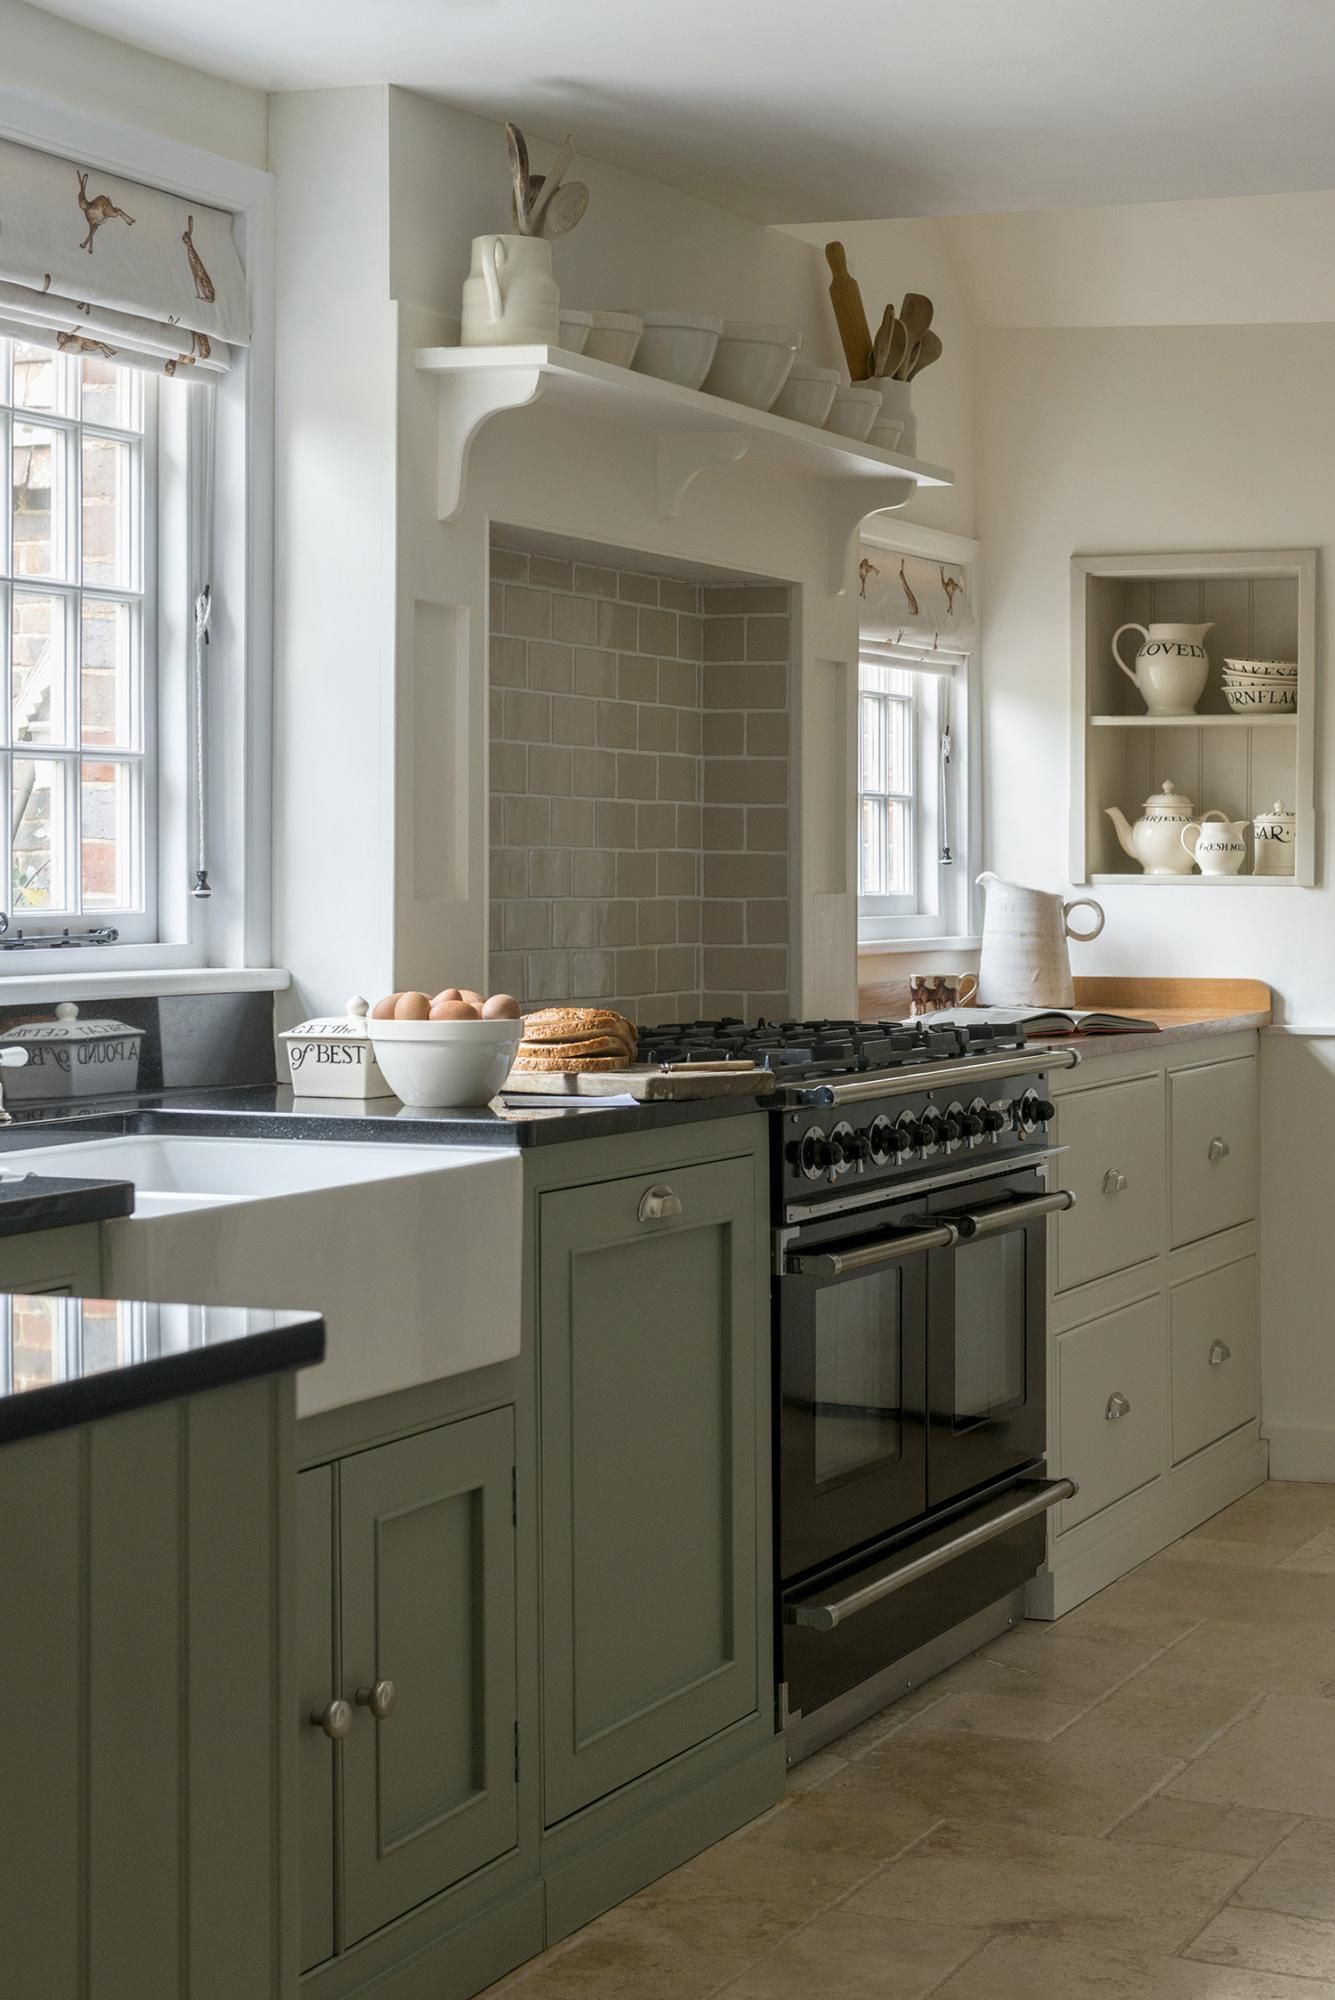 At Middleton our aim is simple; to create spaces to cook ...